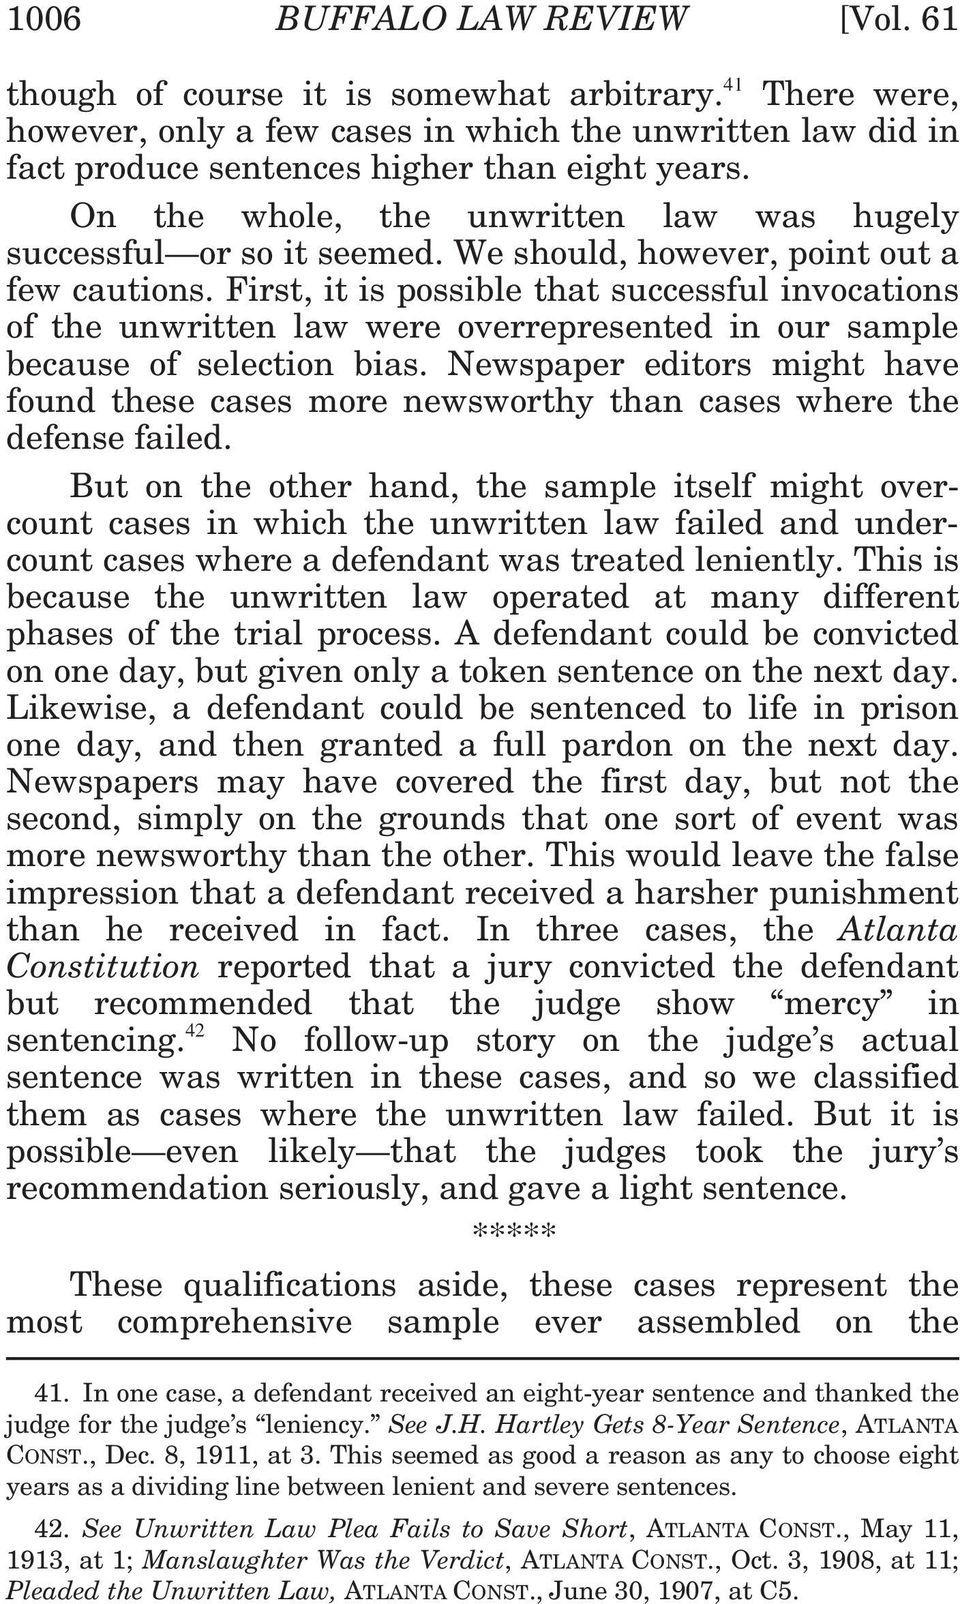 First, it is possible that successful invocations of the unwritten law were overrepresented in our sample because of selection bias.